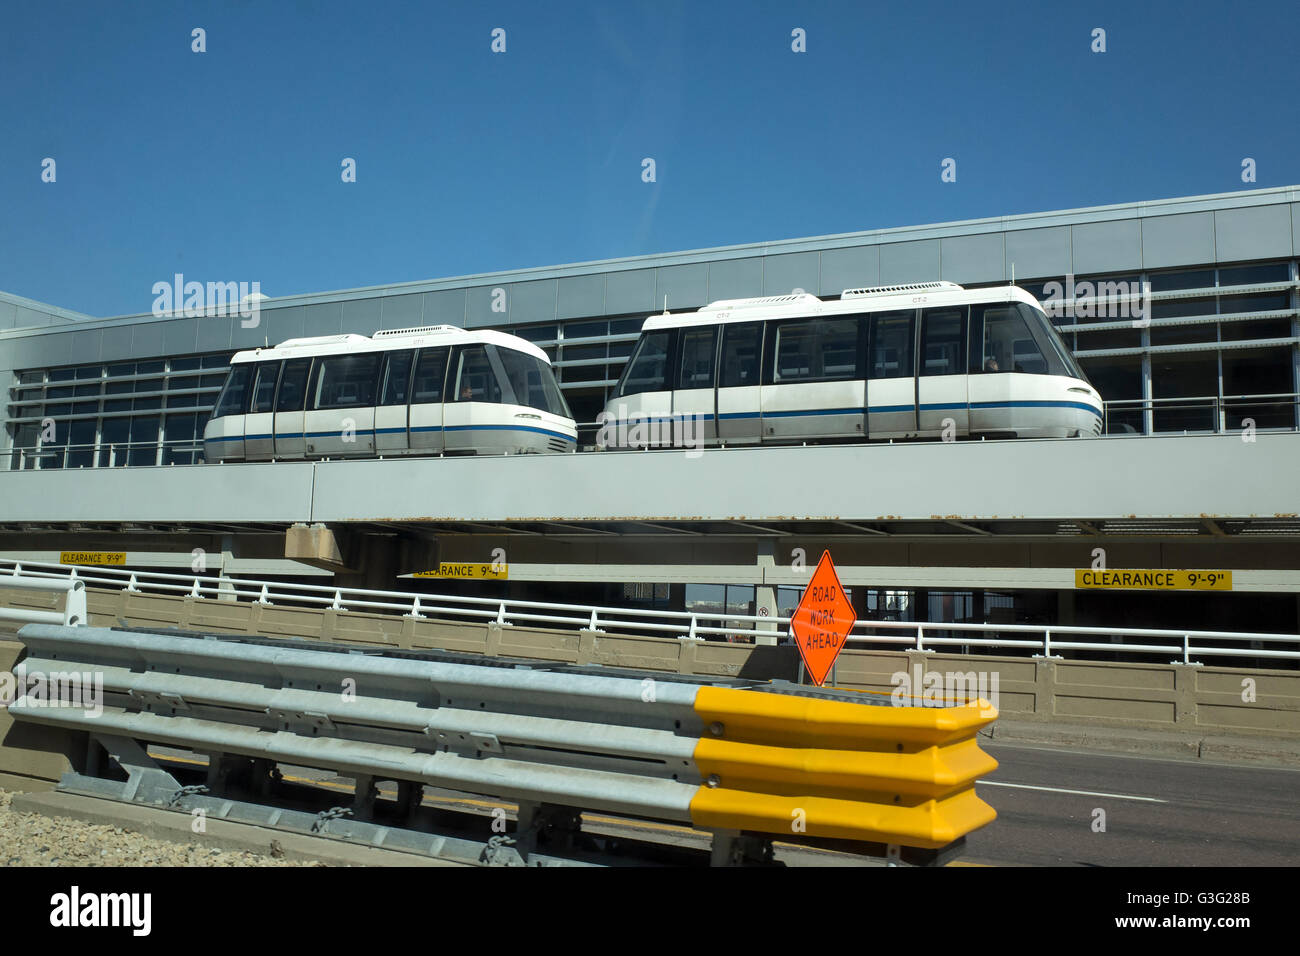 Msp Airport Stock Photos & Msp Airport Stock Images - Alamy